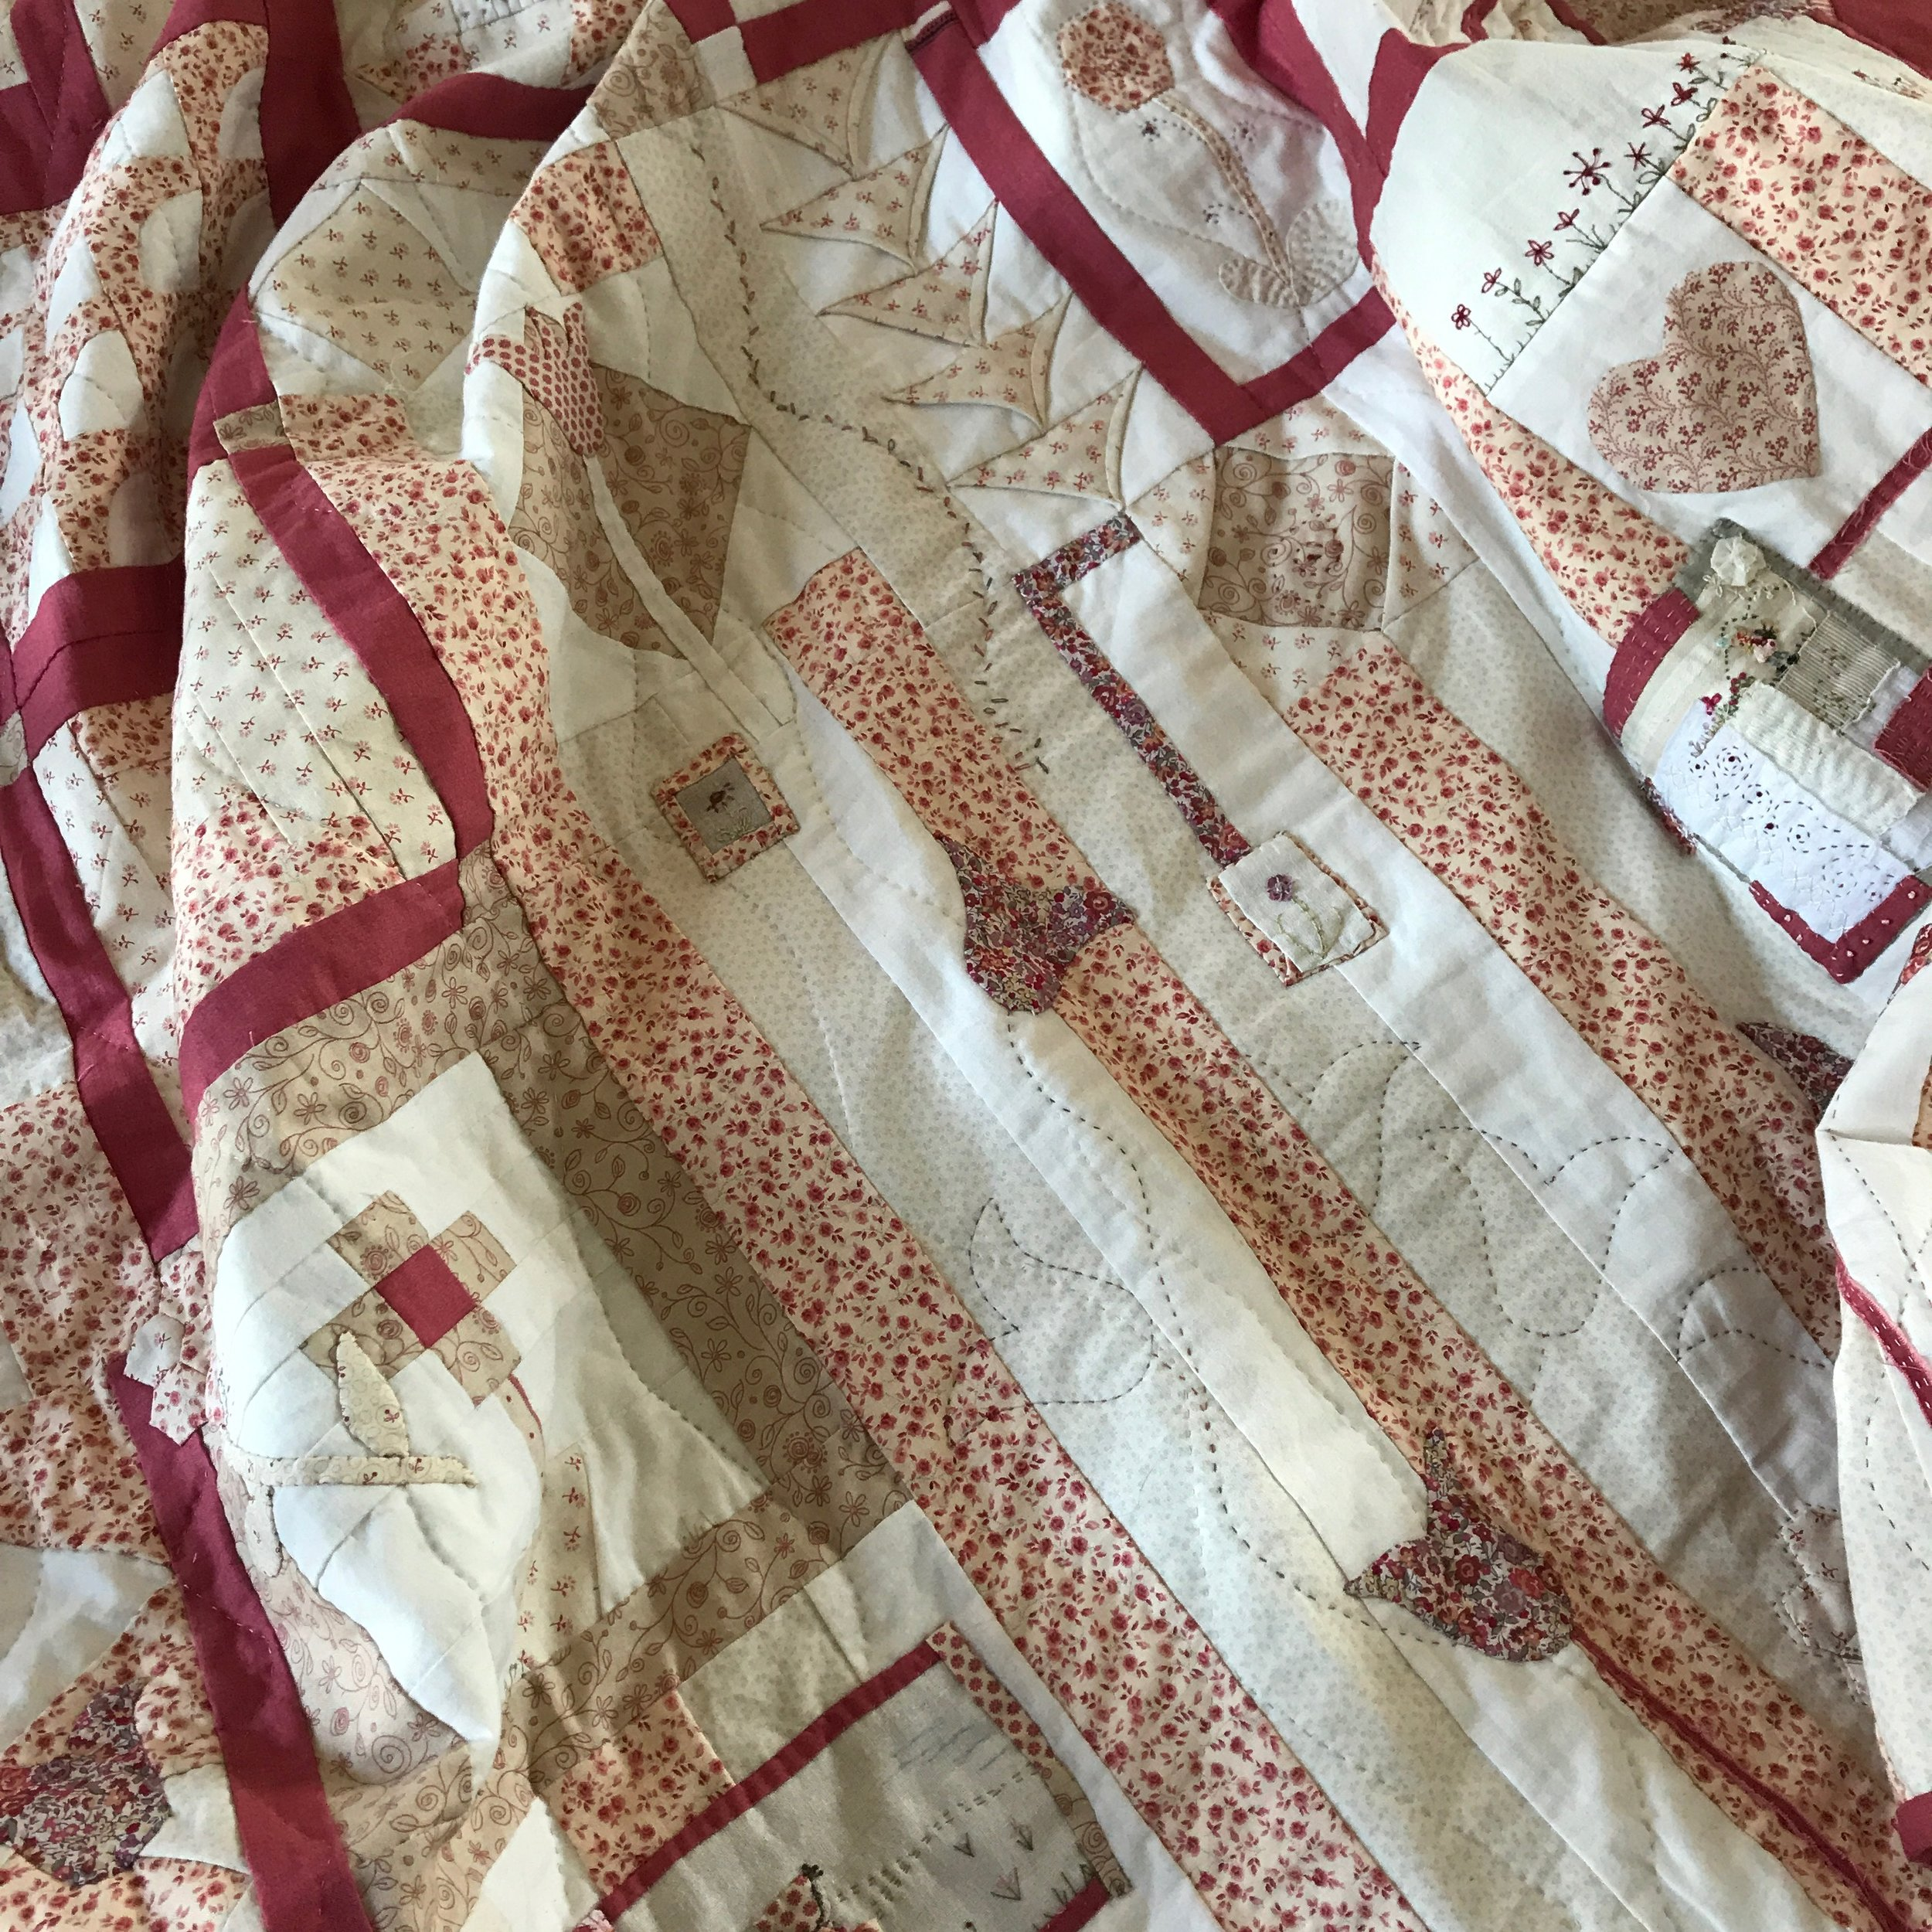 Patchwork. Quilting. Hand stitching. Workshops. Embroidery.